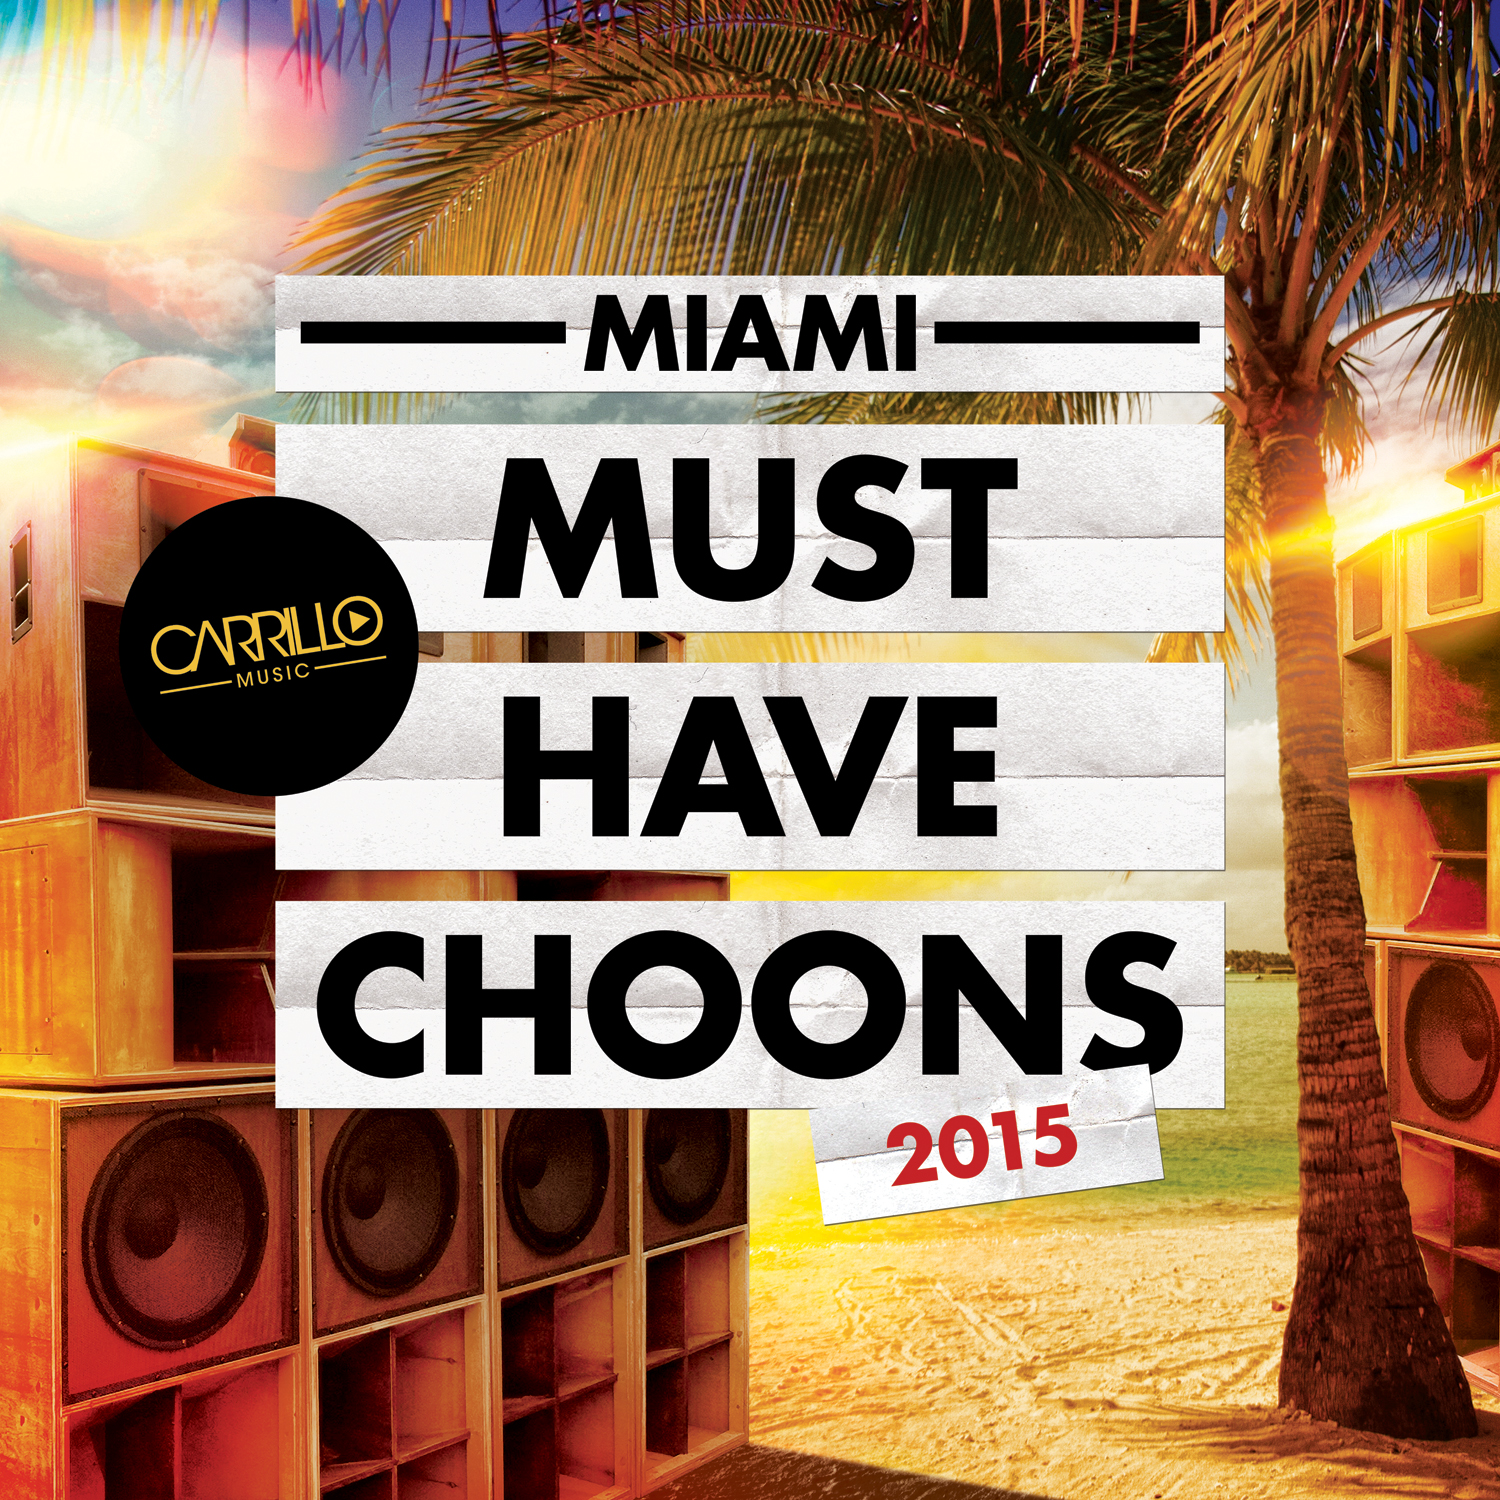 must-have-choons-2015-12x12